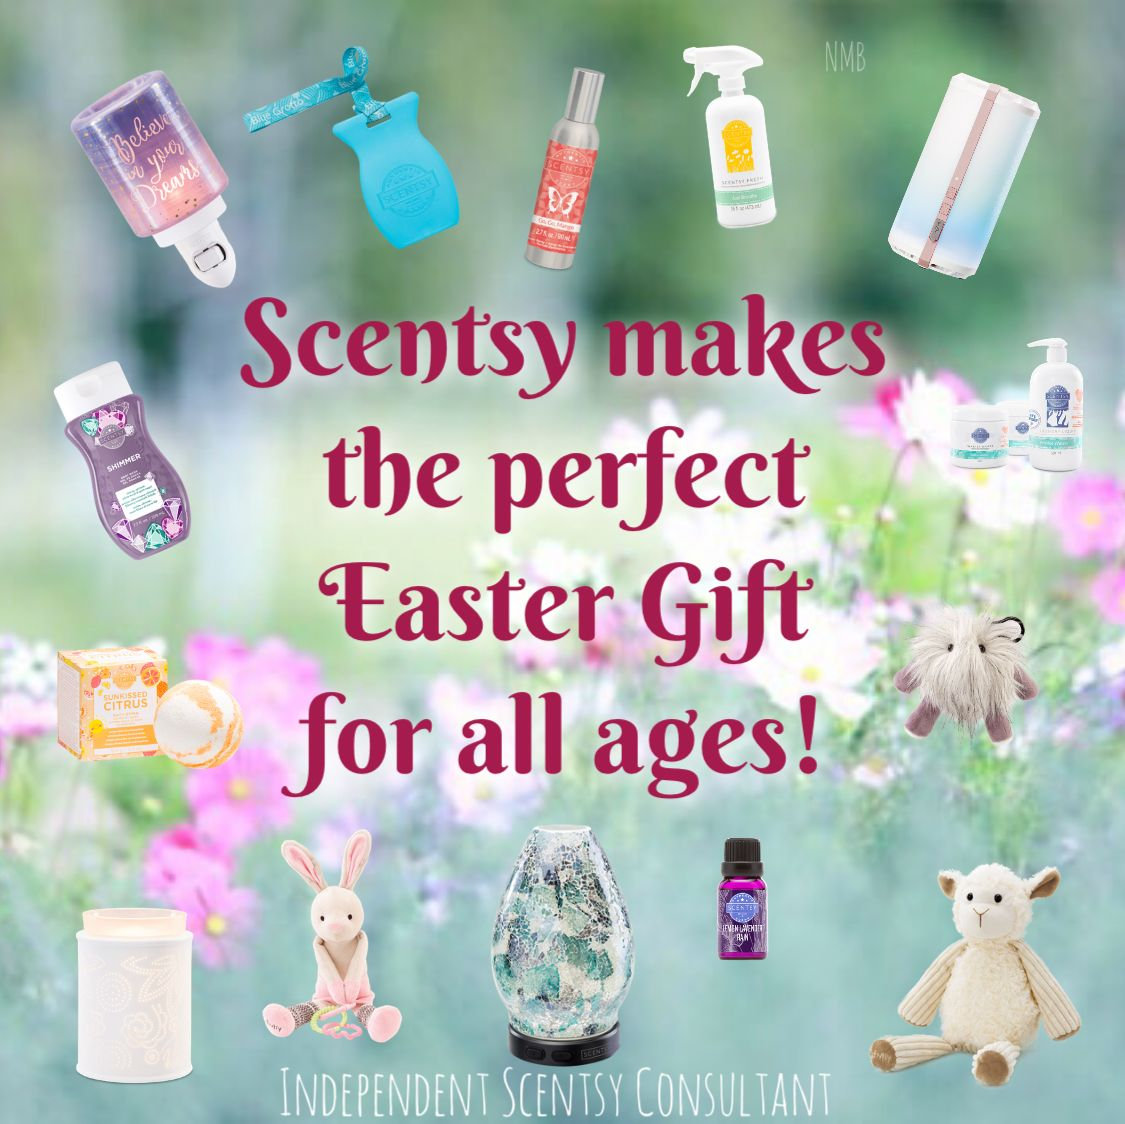 Pin by Hippos Scents on Scentsy Flyers, Feel free to use